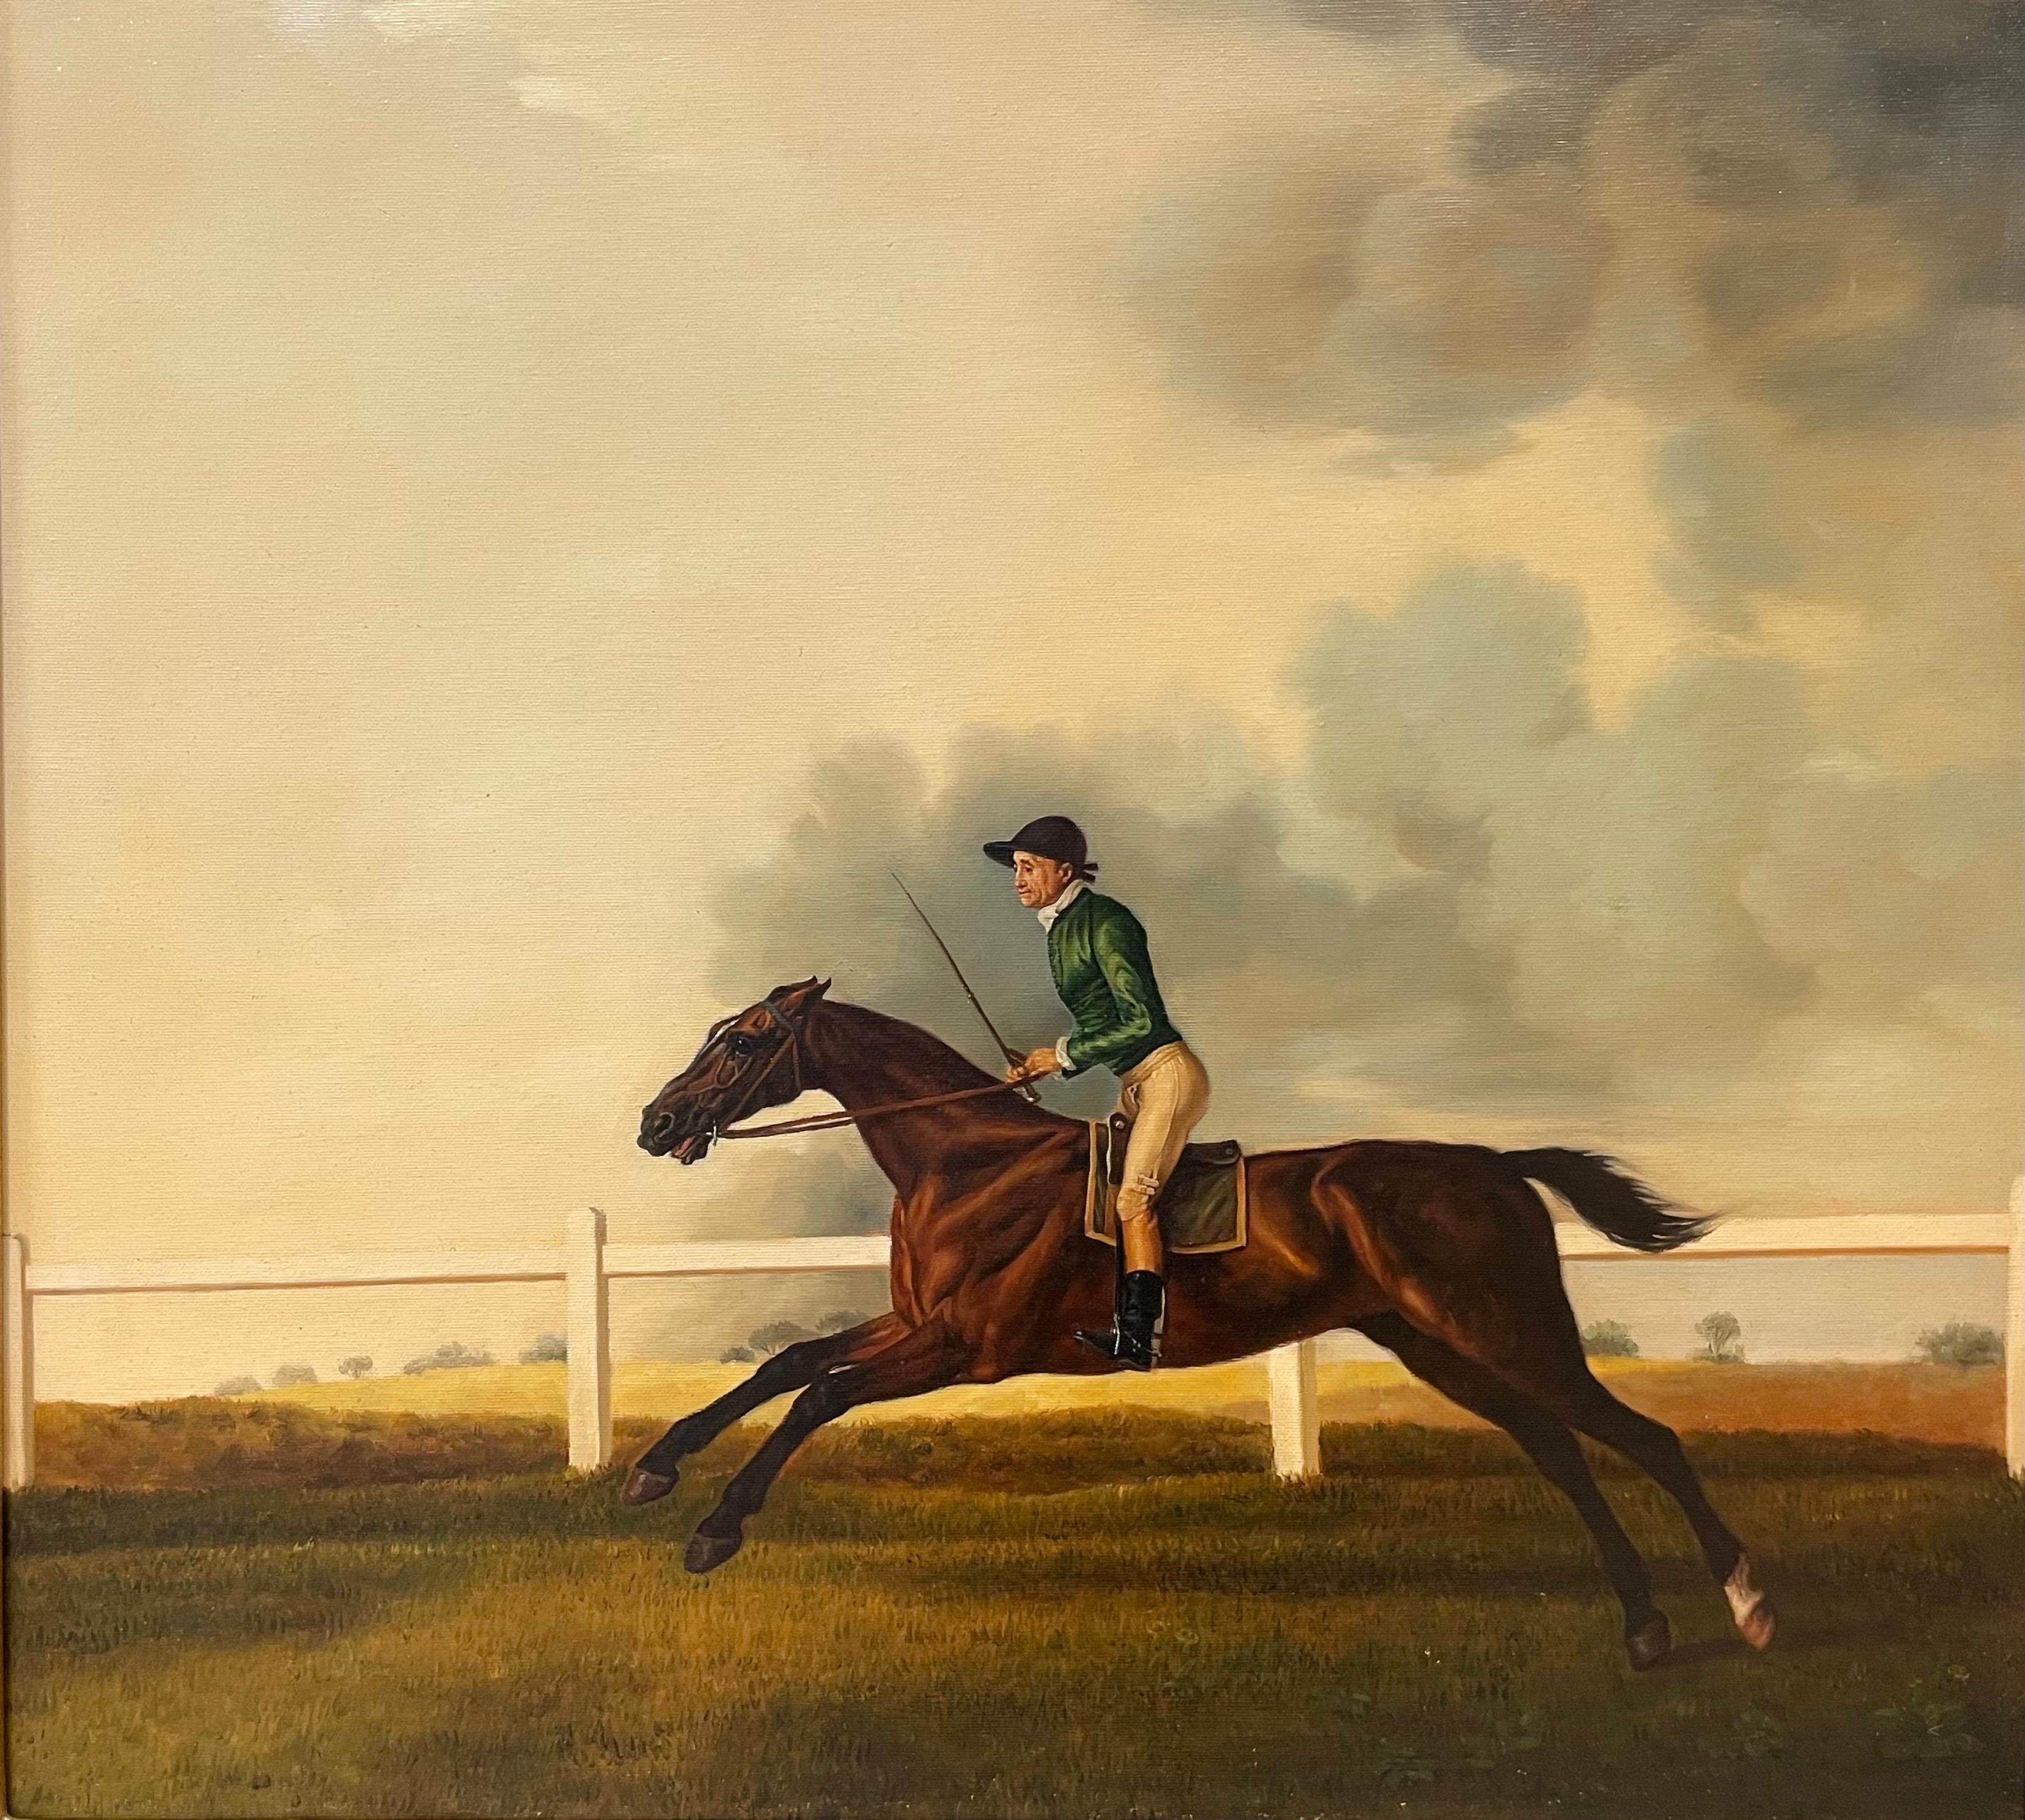 Fine Classic British Sporting Art Oil Painting - Racehorse with Jockey Galloping